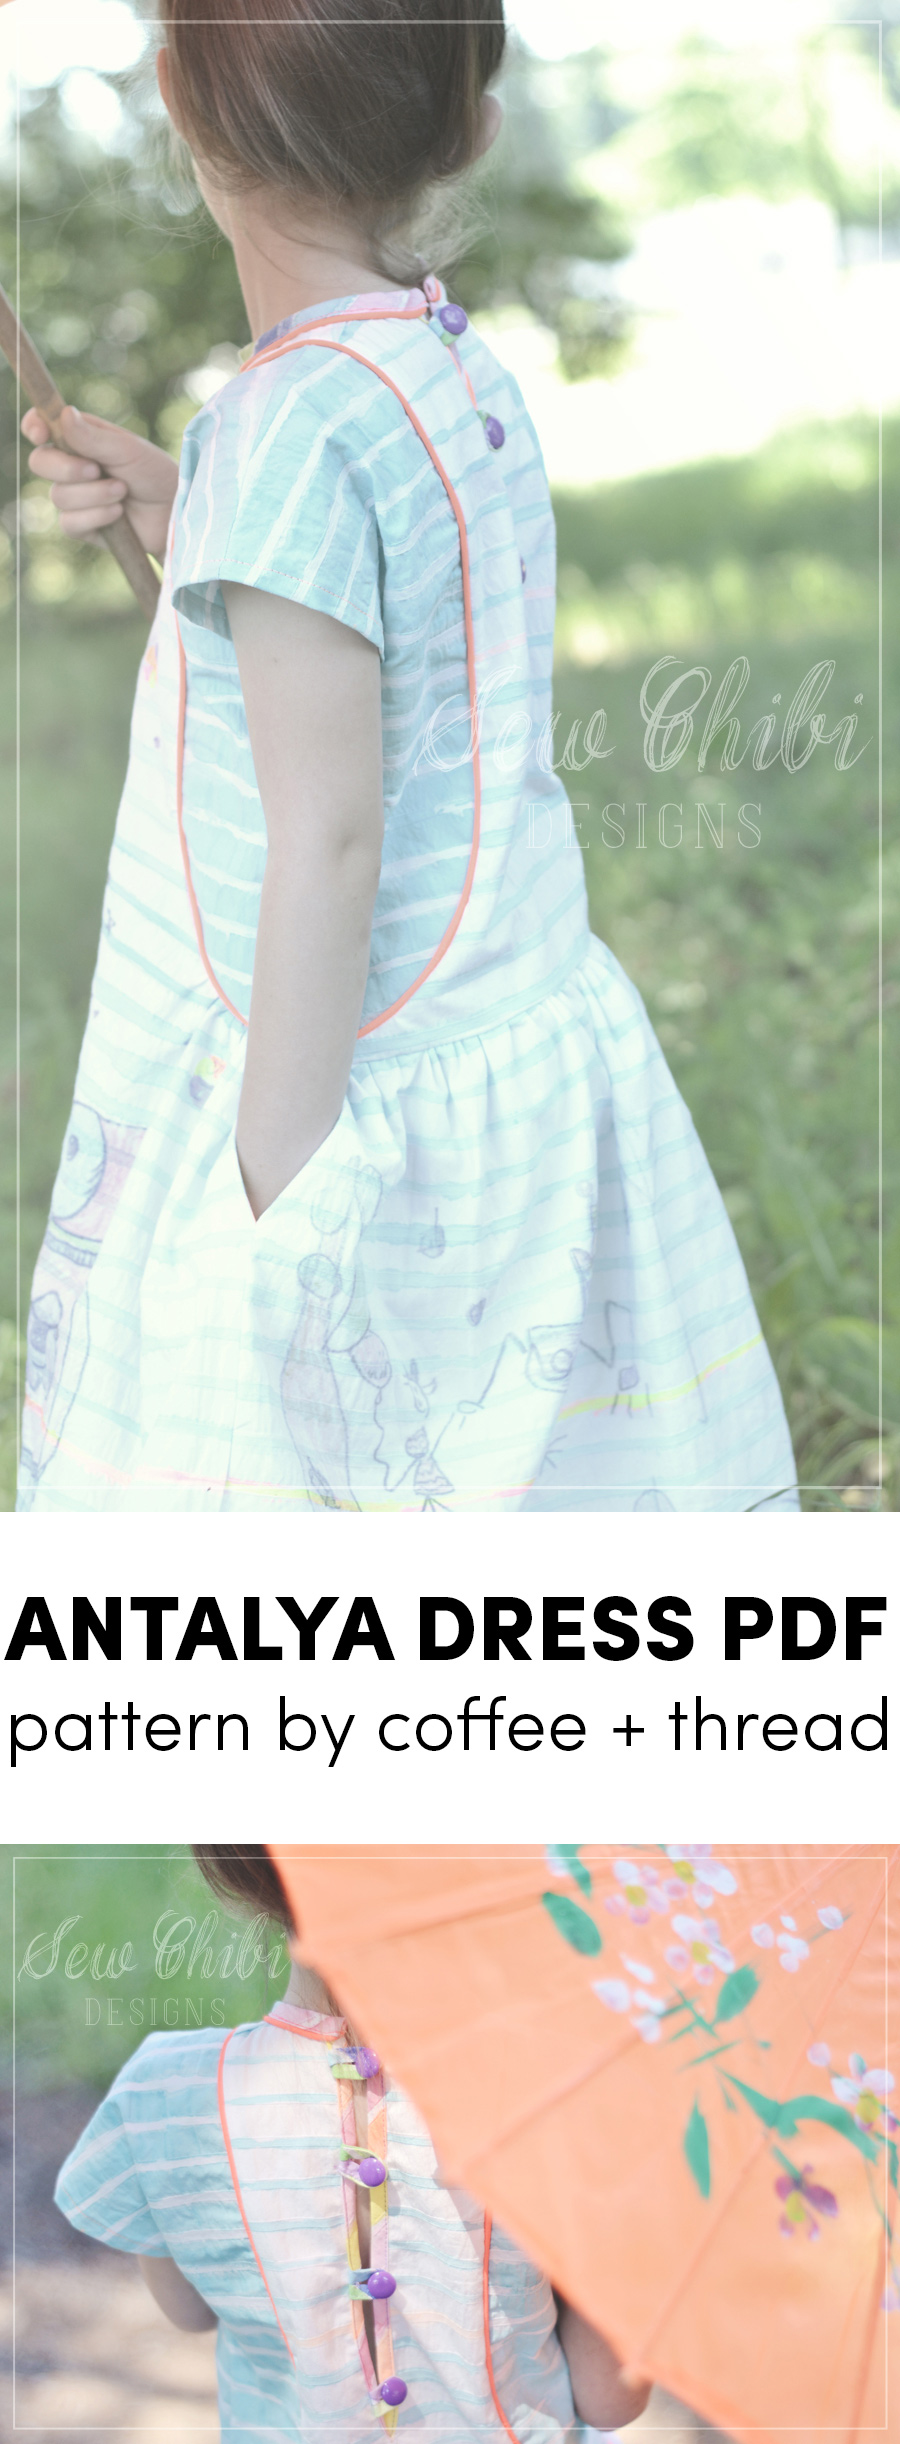 the antalya dress pdf pattern by coffee + thread sewn by sew chibi designs for willow + co.